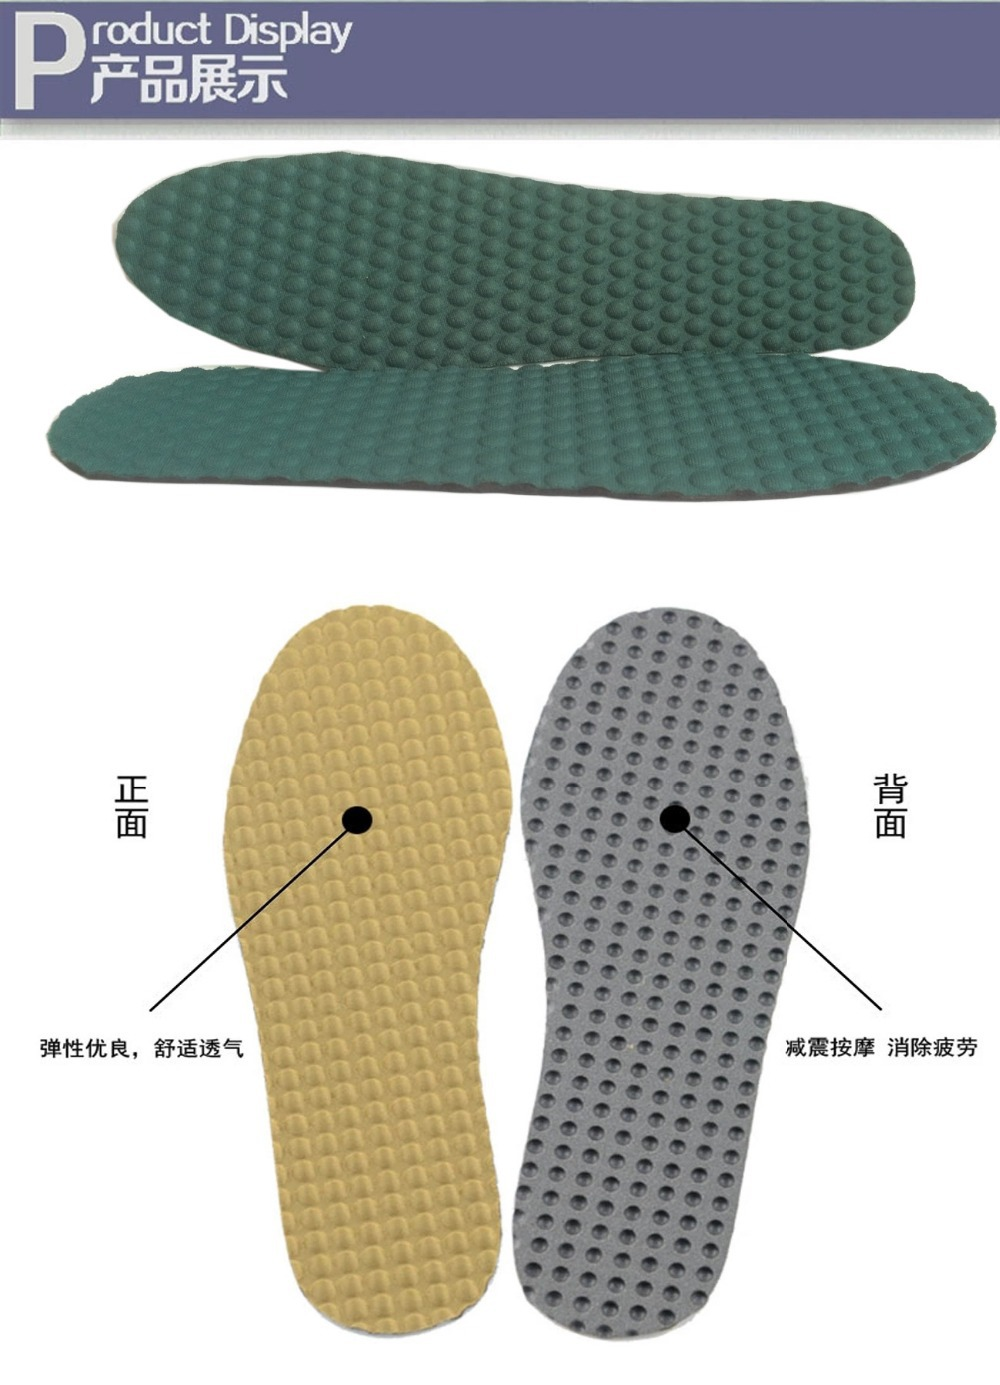 Breathable Eva massage insole sports insole feet care insert unisex health pad sole 20pairs=40pieces(China (Mainland))